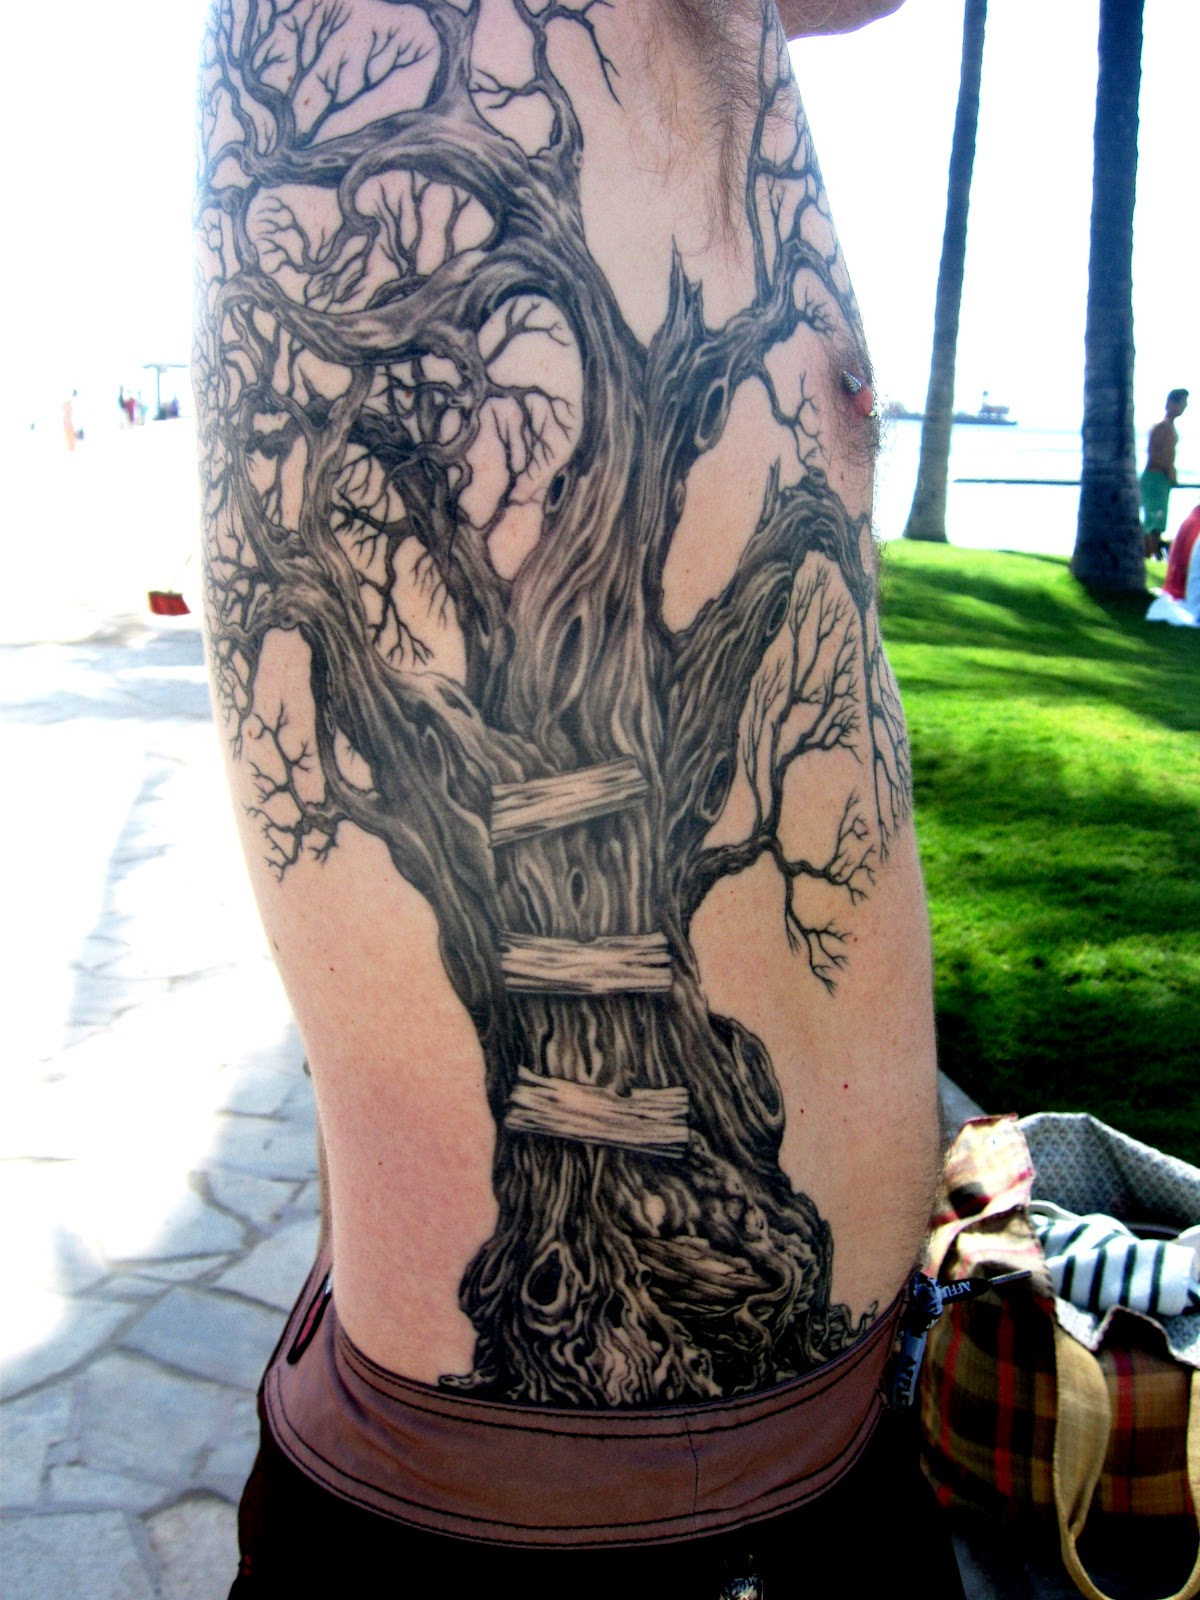 Slip With Snak: TREES, TREE TRIMMERS & A TREE TATTOO